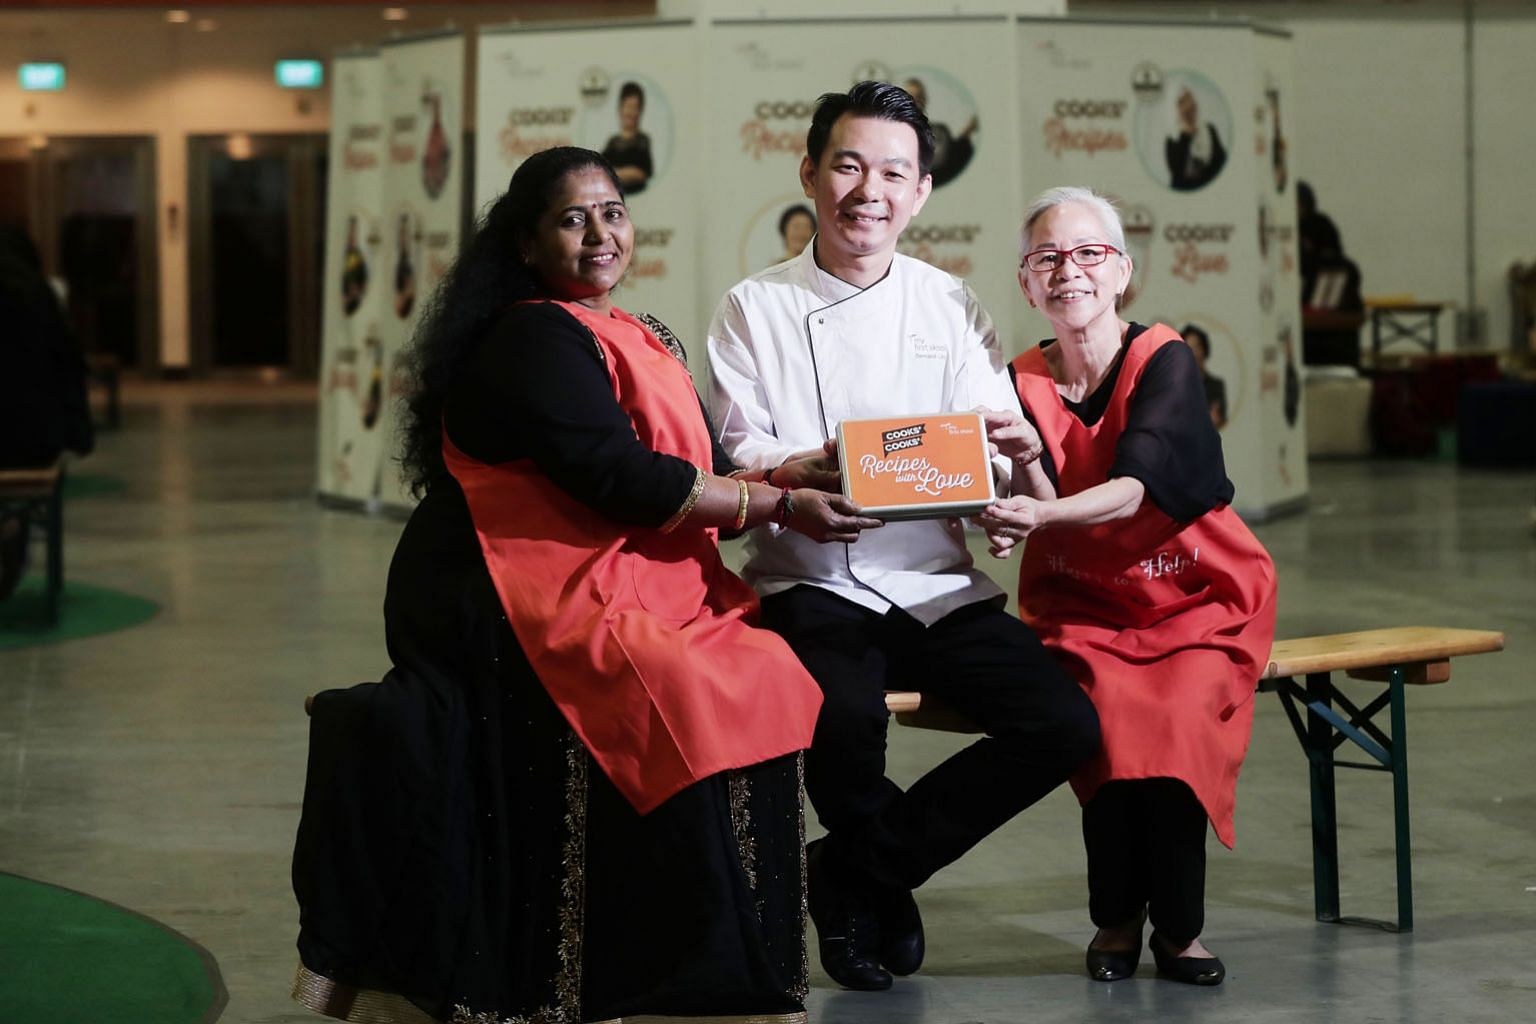 Madam Sakunthla Chelladurai, Mr Bernard Lim and Madam Ng Mee Lan are among 21 chefs and cooks featured in Recipes With Love, a set of 21 recipe cards of healthy meals for children compiled by dietitians and nutritionists. ST PHOTO: KELVIN CHNG